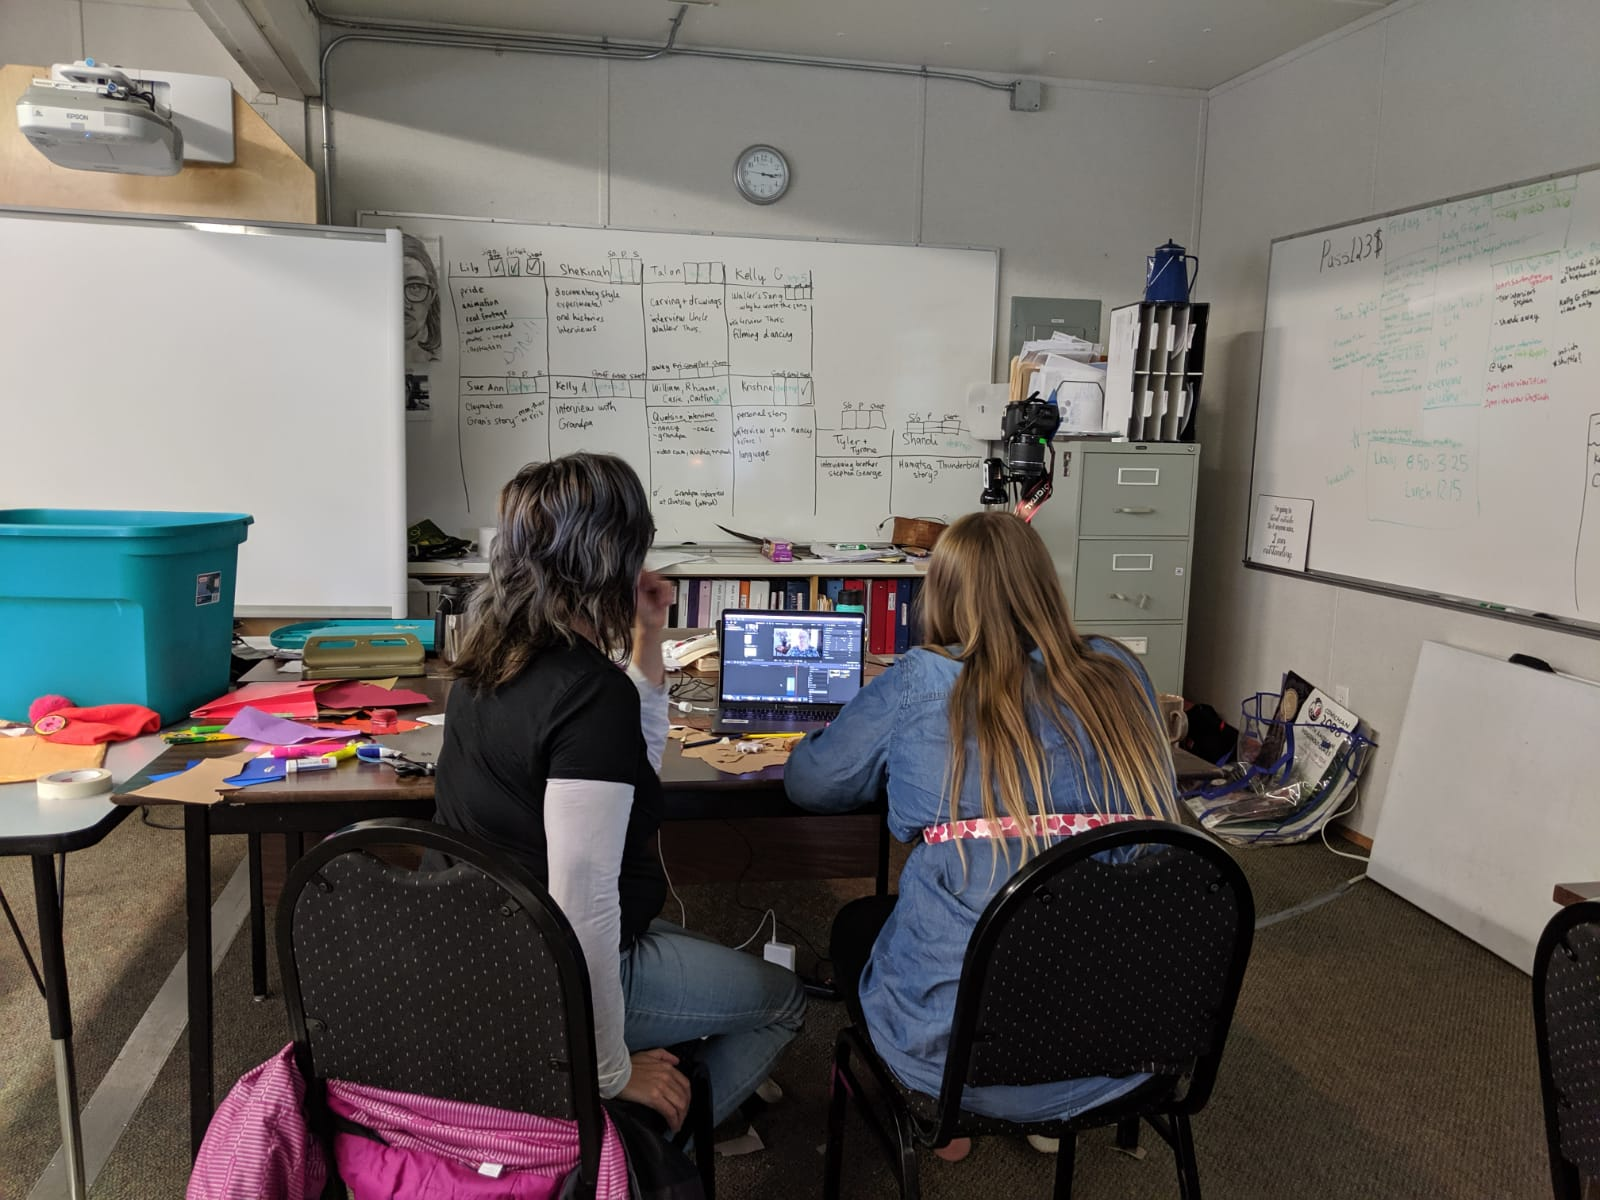 Lisa g gives Sue-Ann animation tips